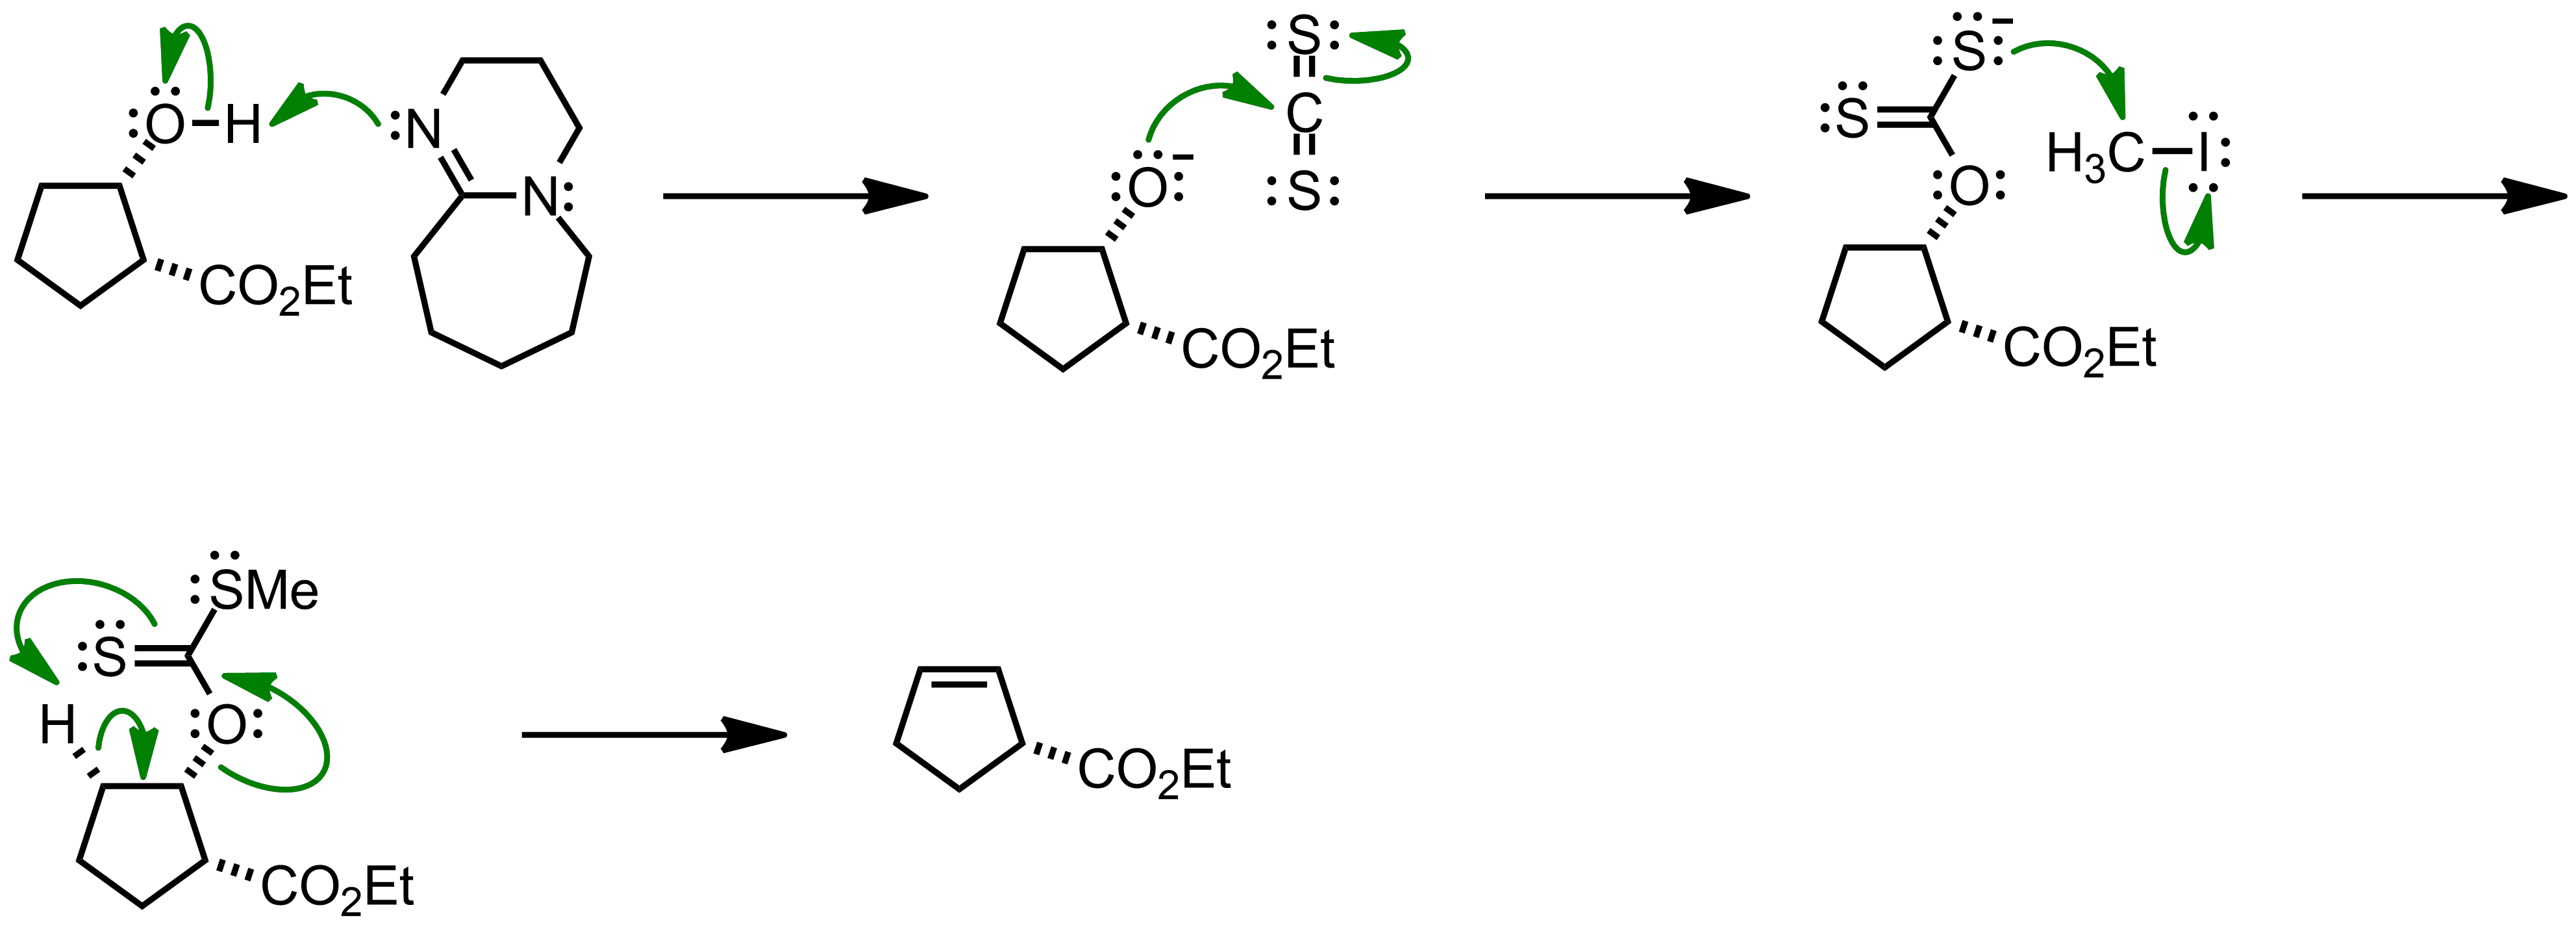 Mechanism of the Chugaev Elimination